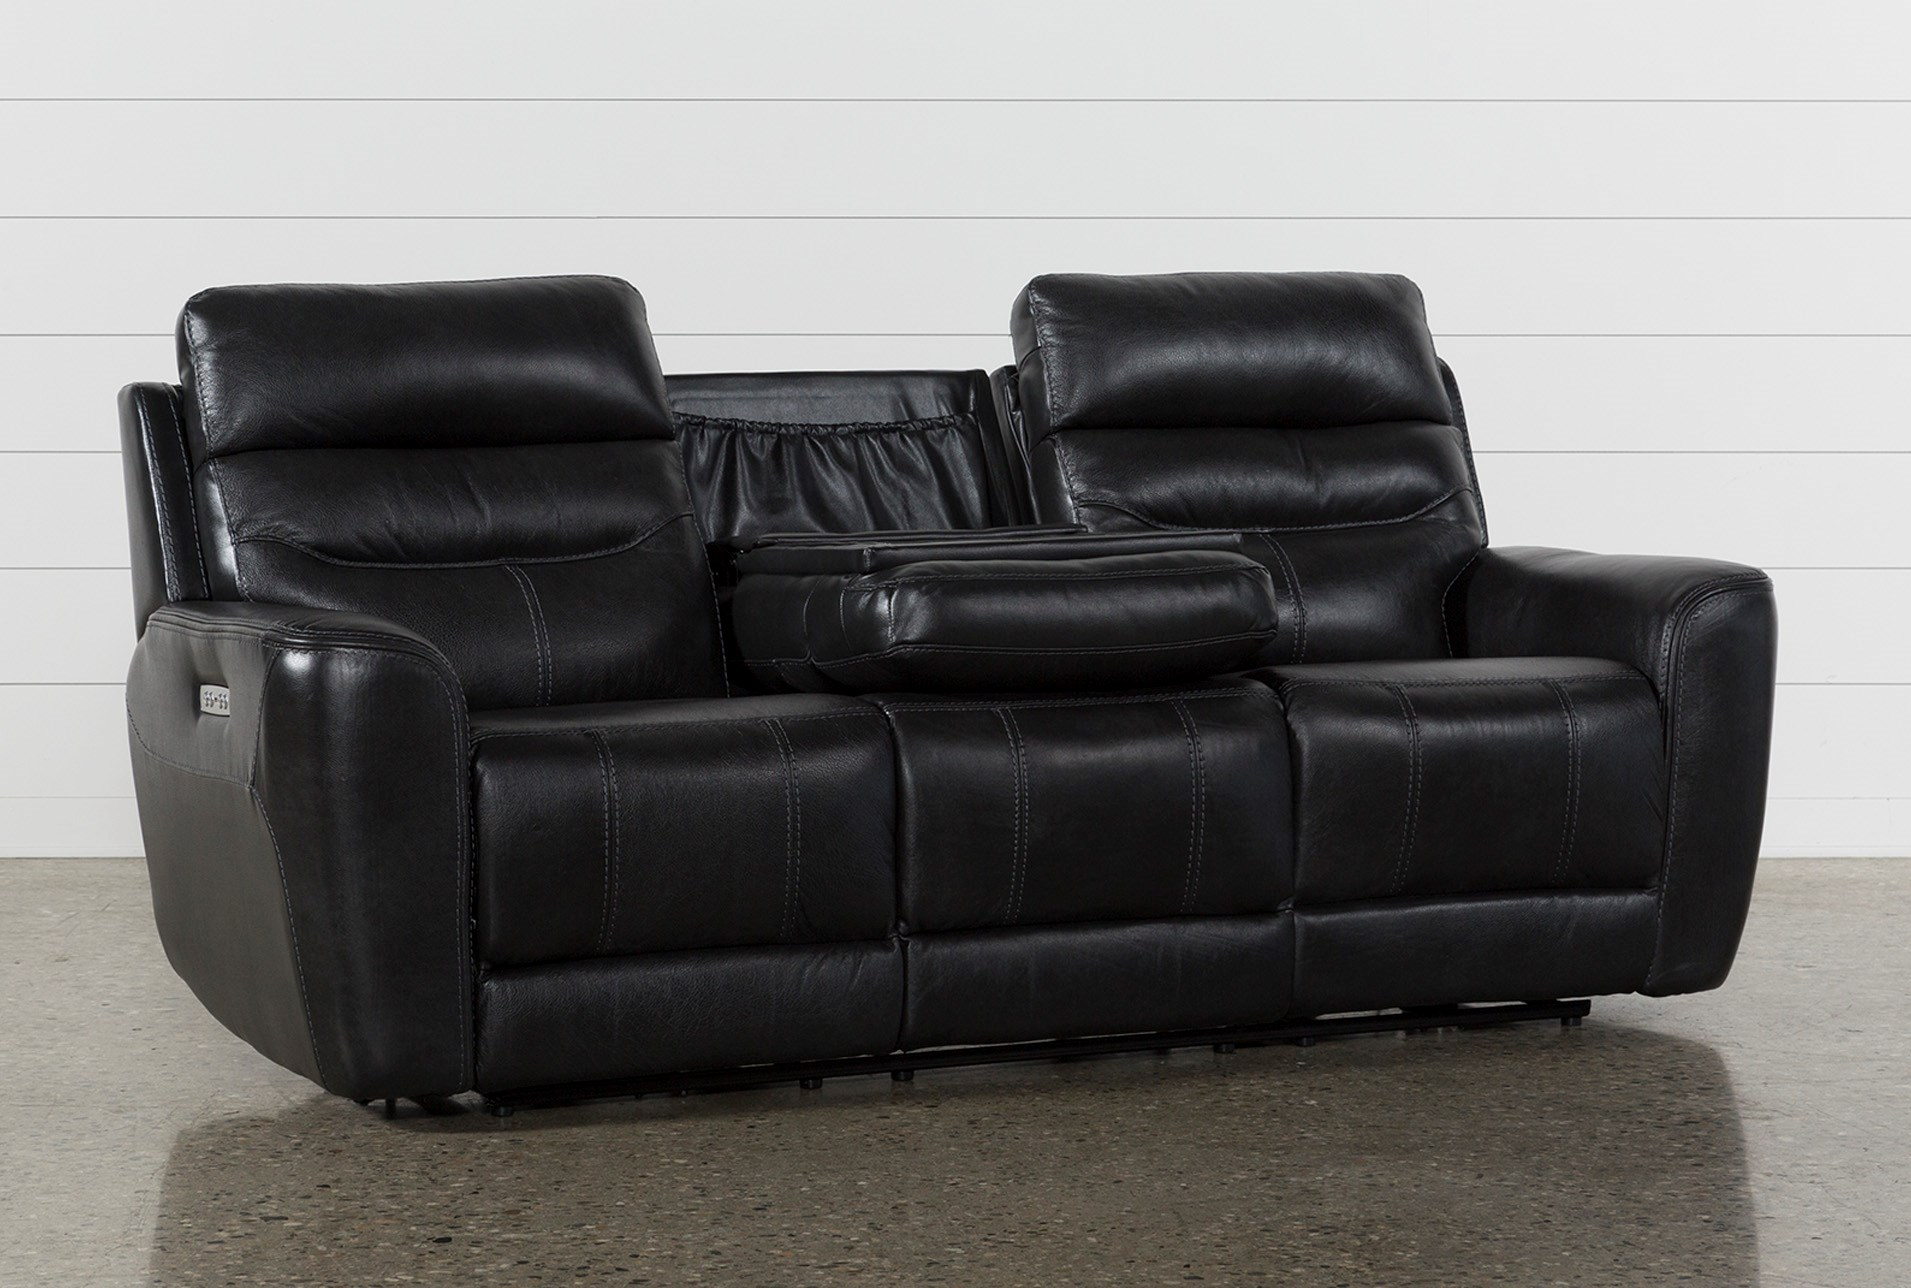 Cheyenne Black Leather Power Reclining Sofa W/Pwr Headrest & Drop ...